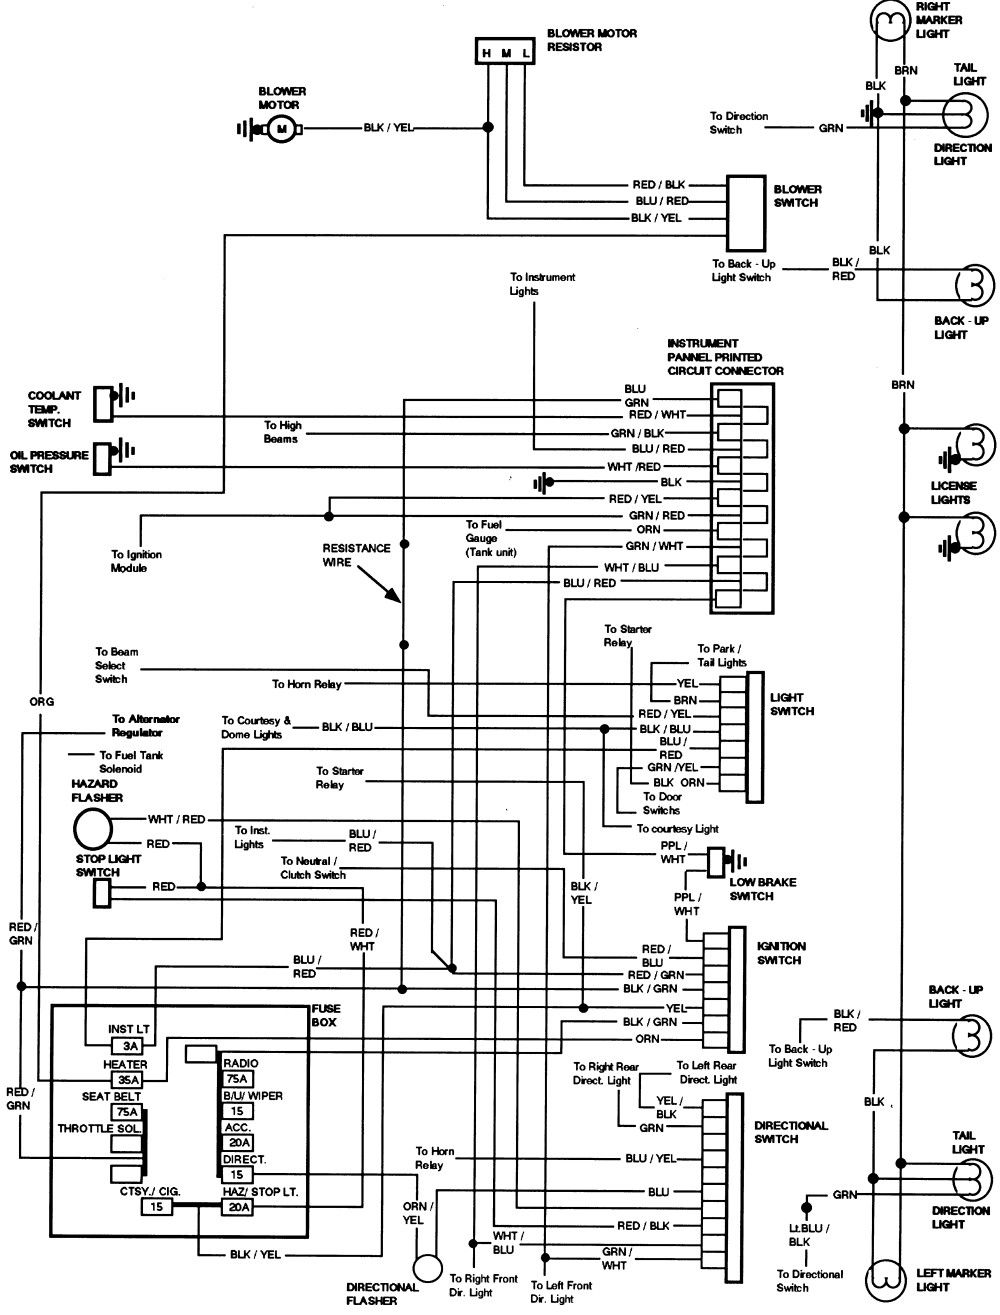 Ford Ignition Switch Wiring Diagram Ford F250 Ford F350 Diesel Diagram